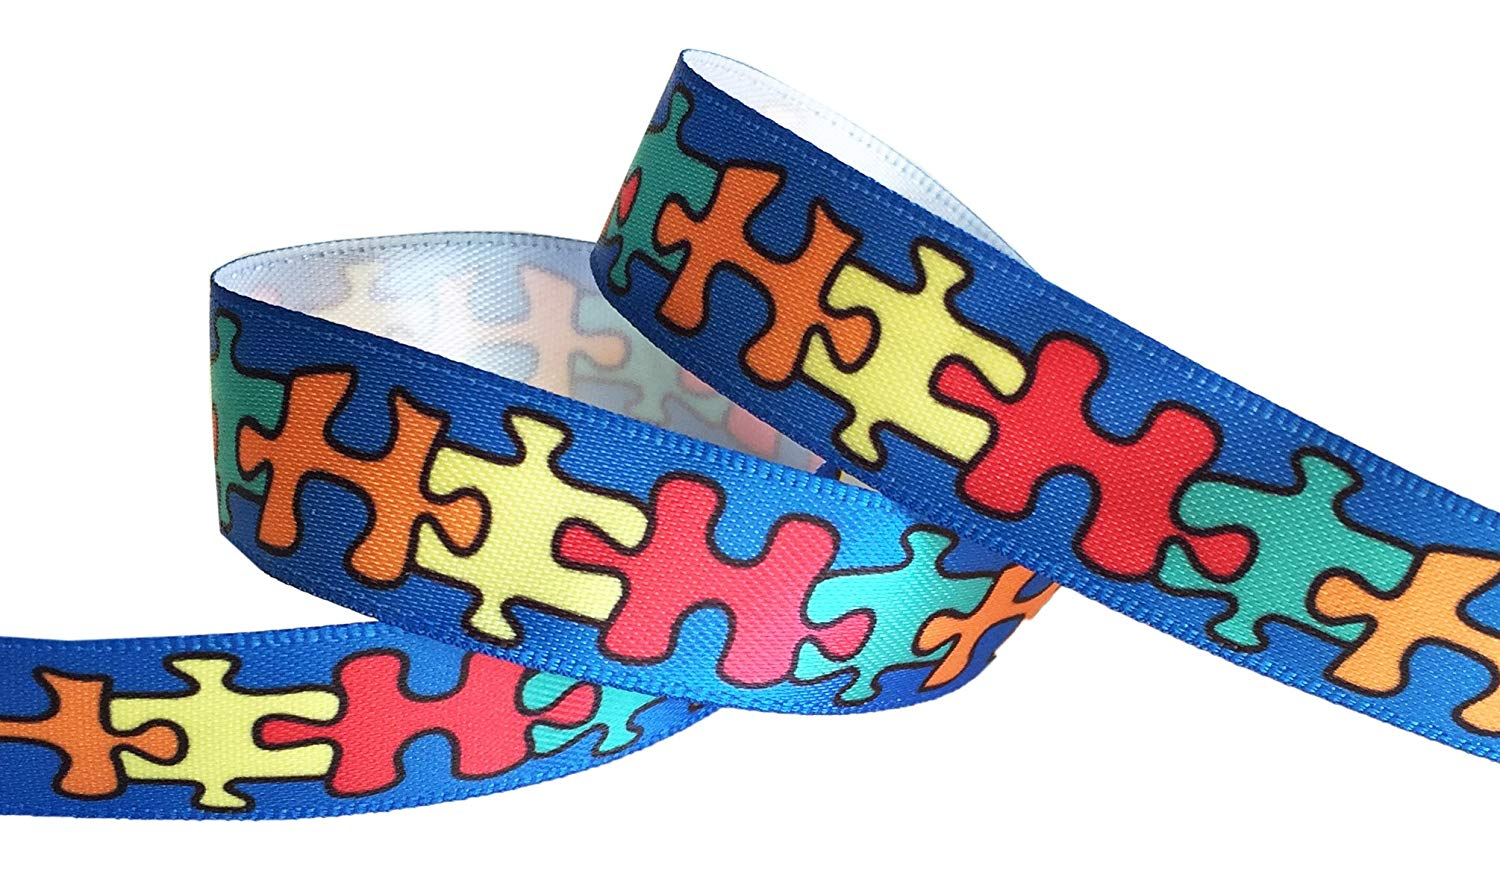 fcb74252a Get Quotations · HipGirl Autism Fabric, Autism Ribbon, Autism Awareness  Products, Jigsaw Puzzle Ribbon for Gift